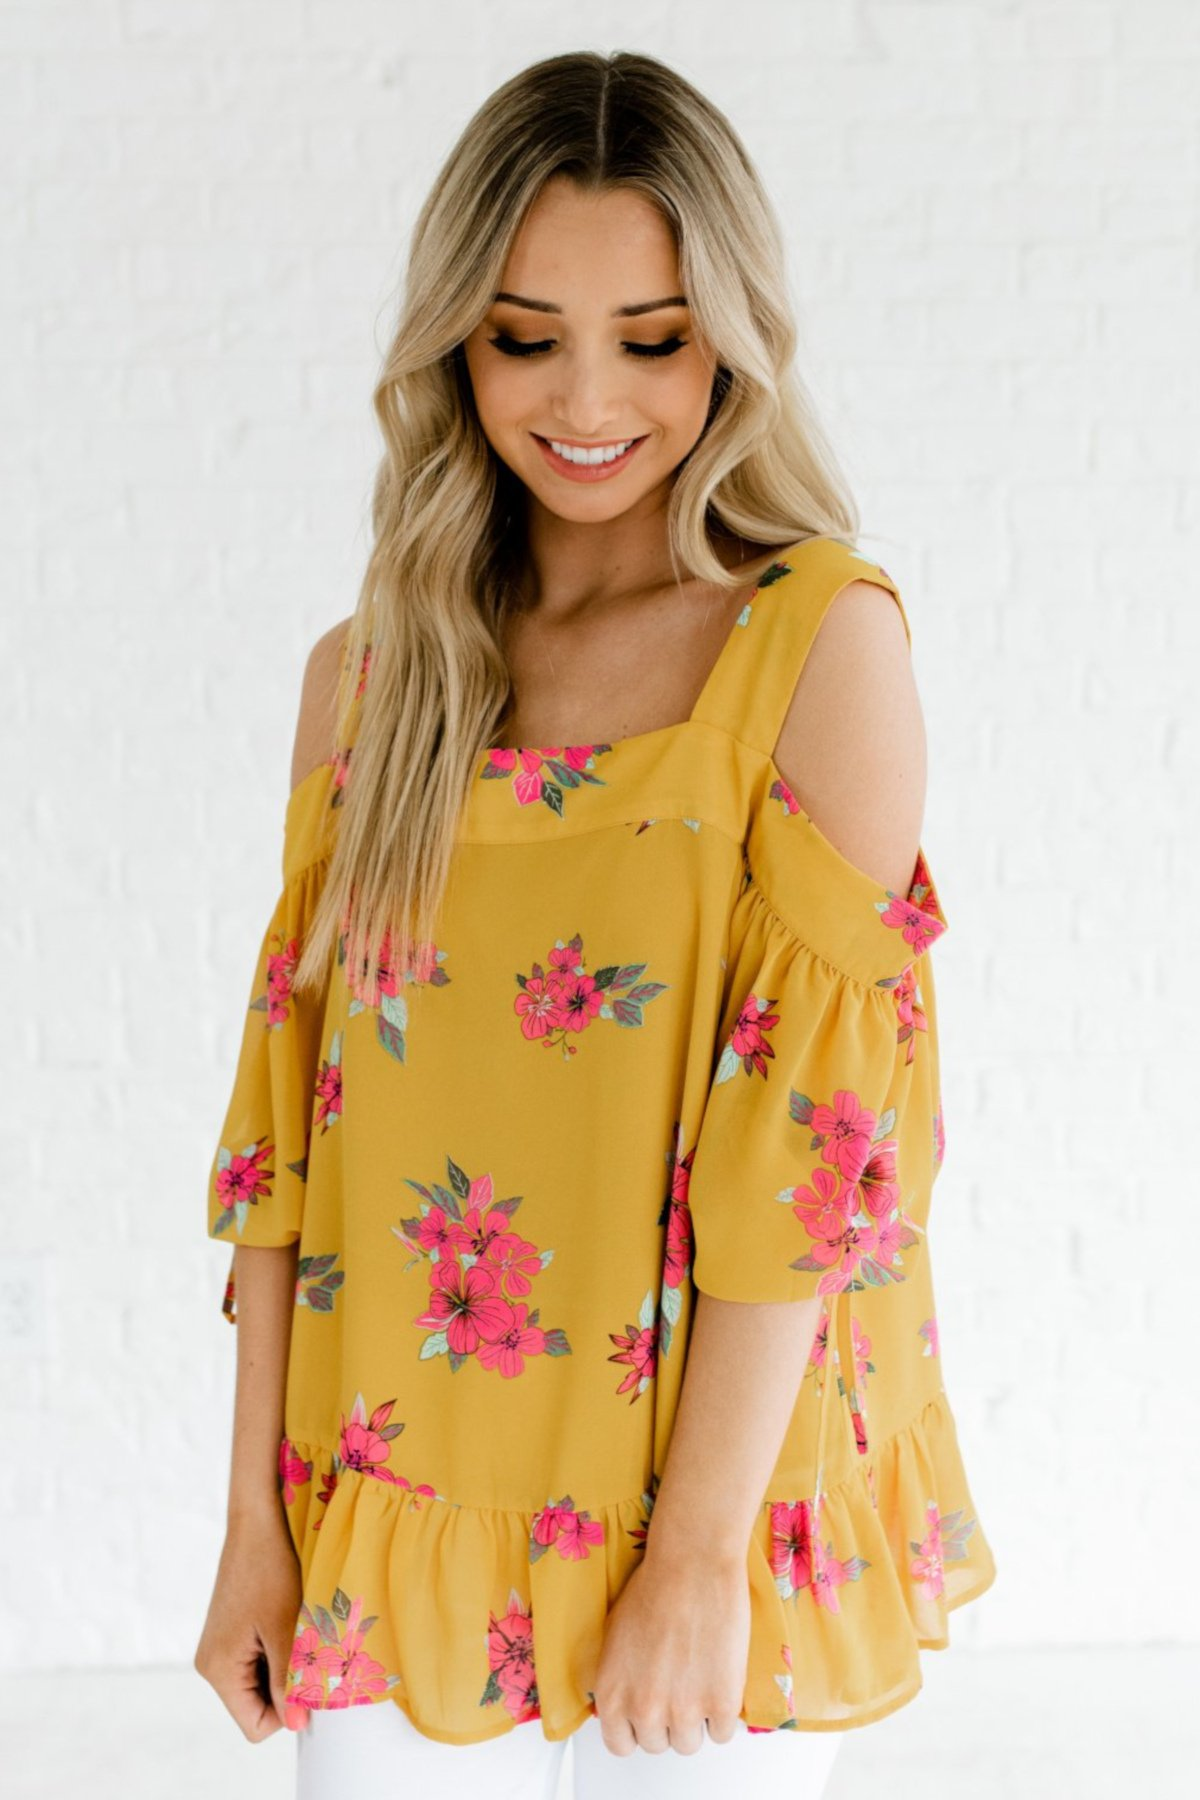 Hibiscus_Honey_Yellow_Cold_Shoulder_Top_22e3d65a-a2a7-4780-832d-d573fb566648_2000x.jpg